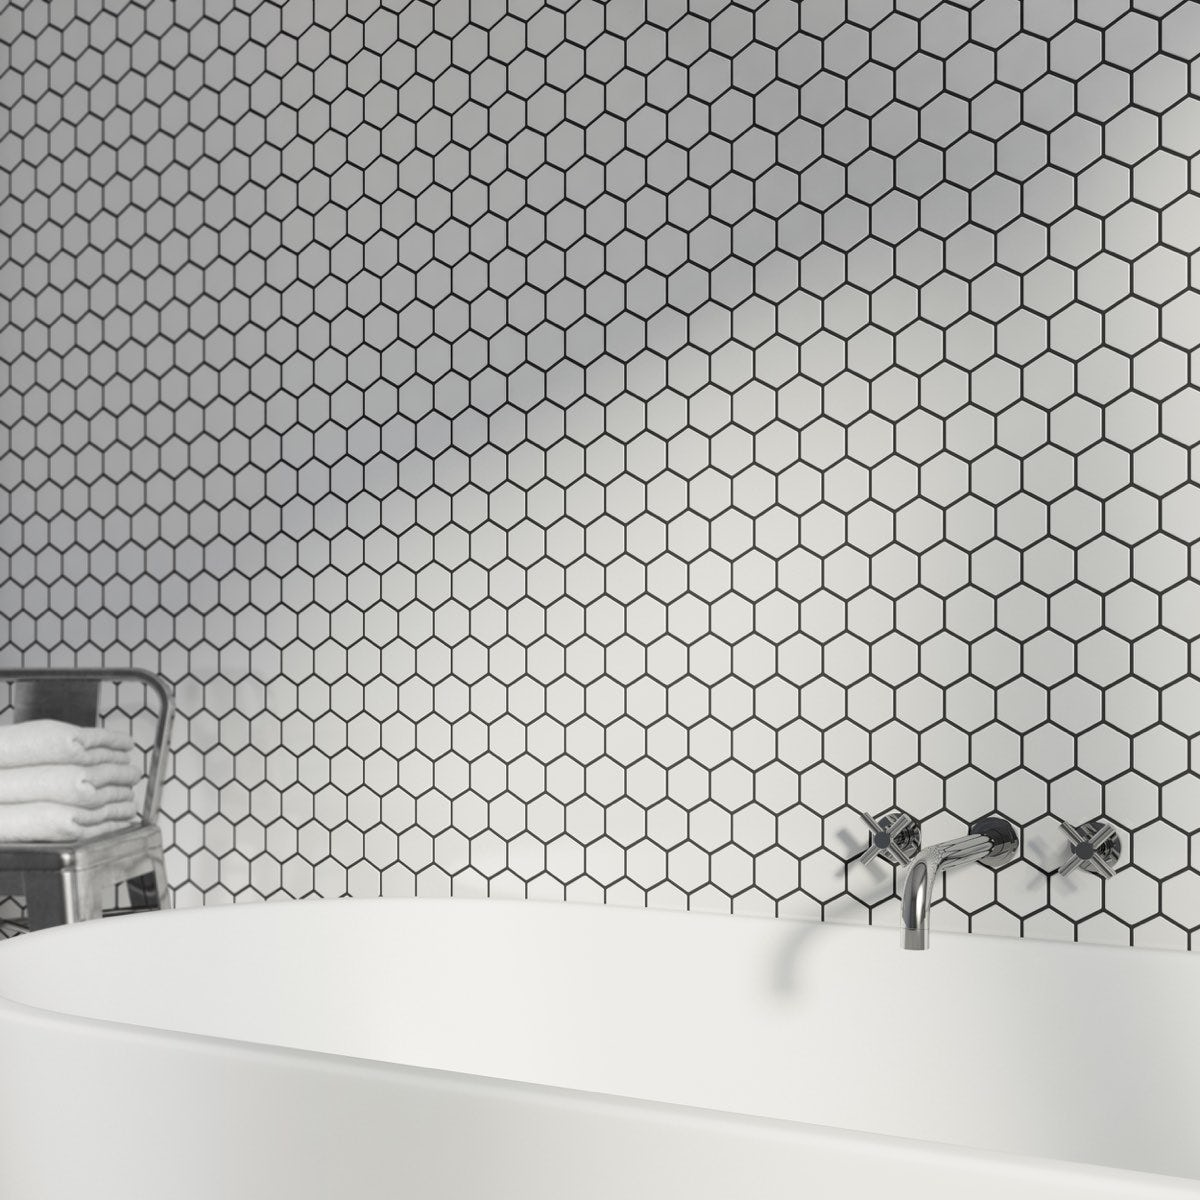 British Ceramic Tile Mosaic hex white gloss tile 300mm x 300mm - 1 sheet